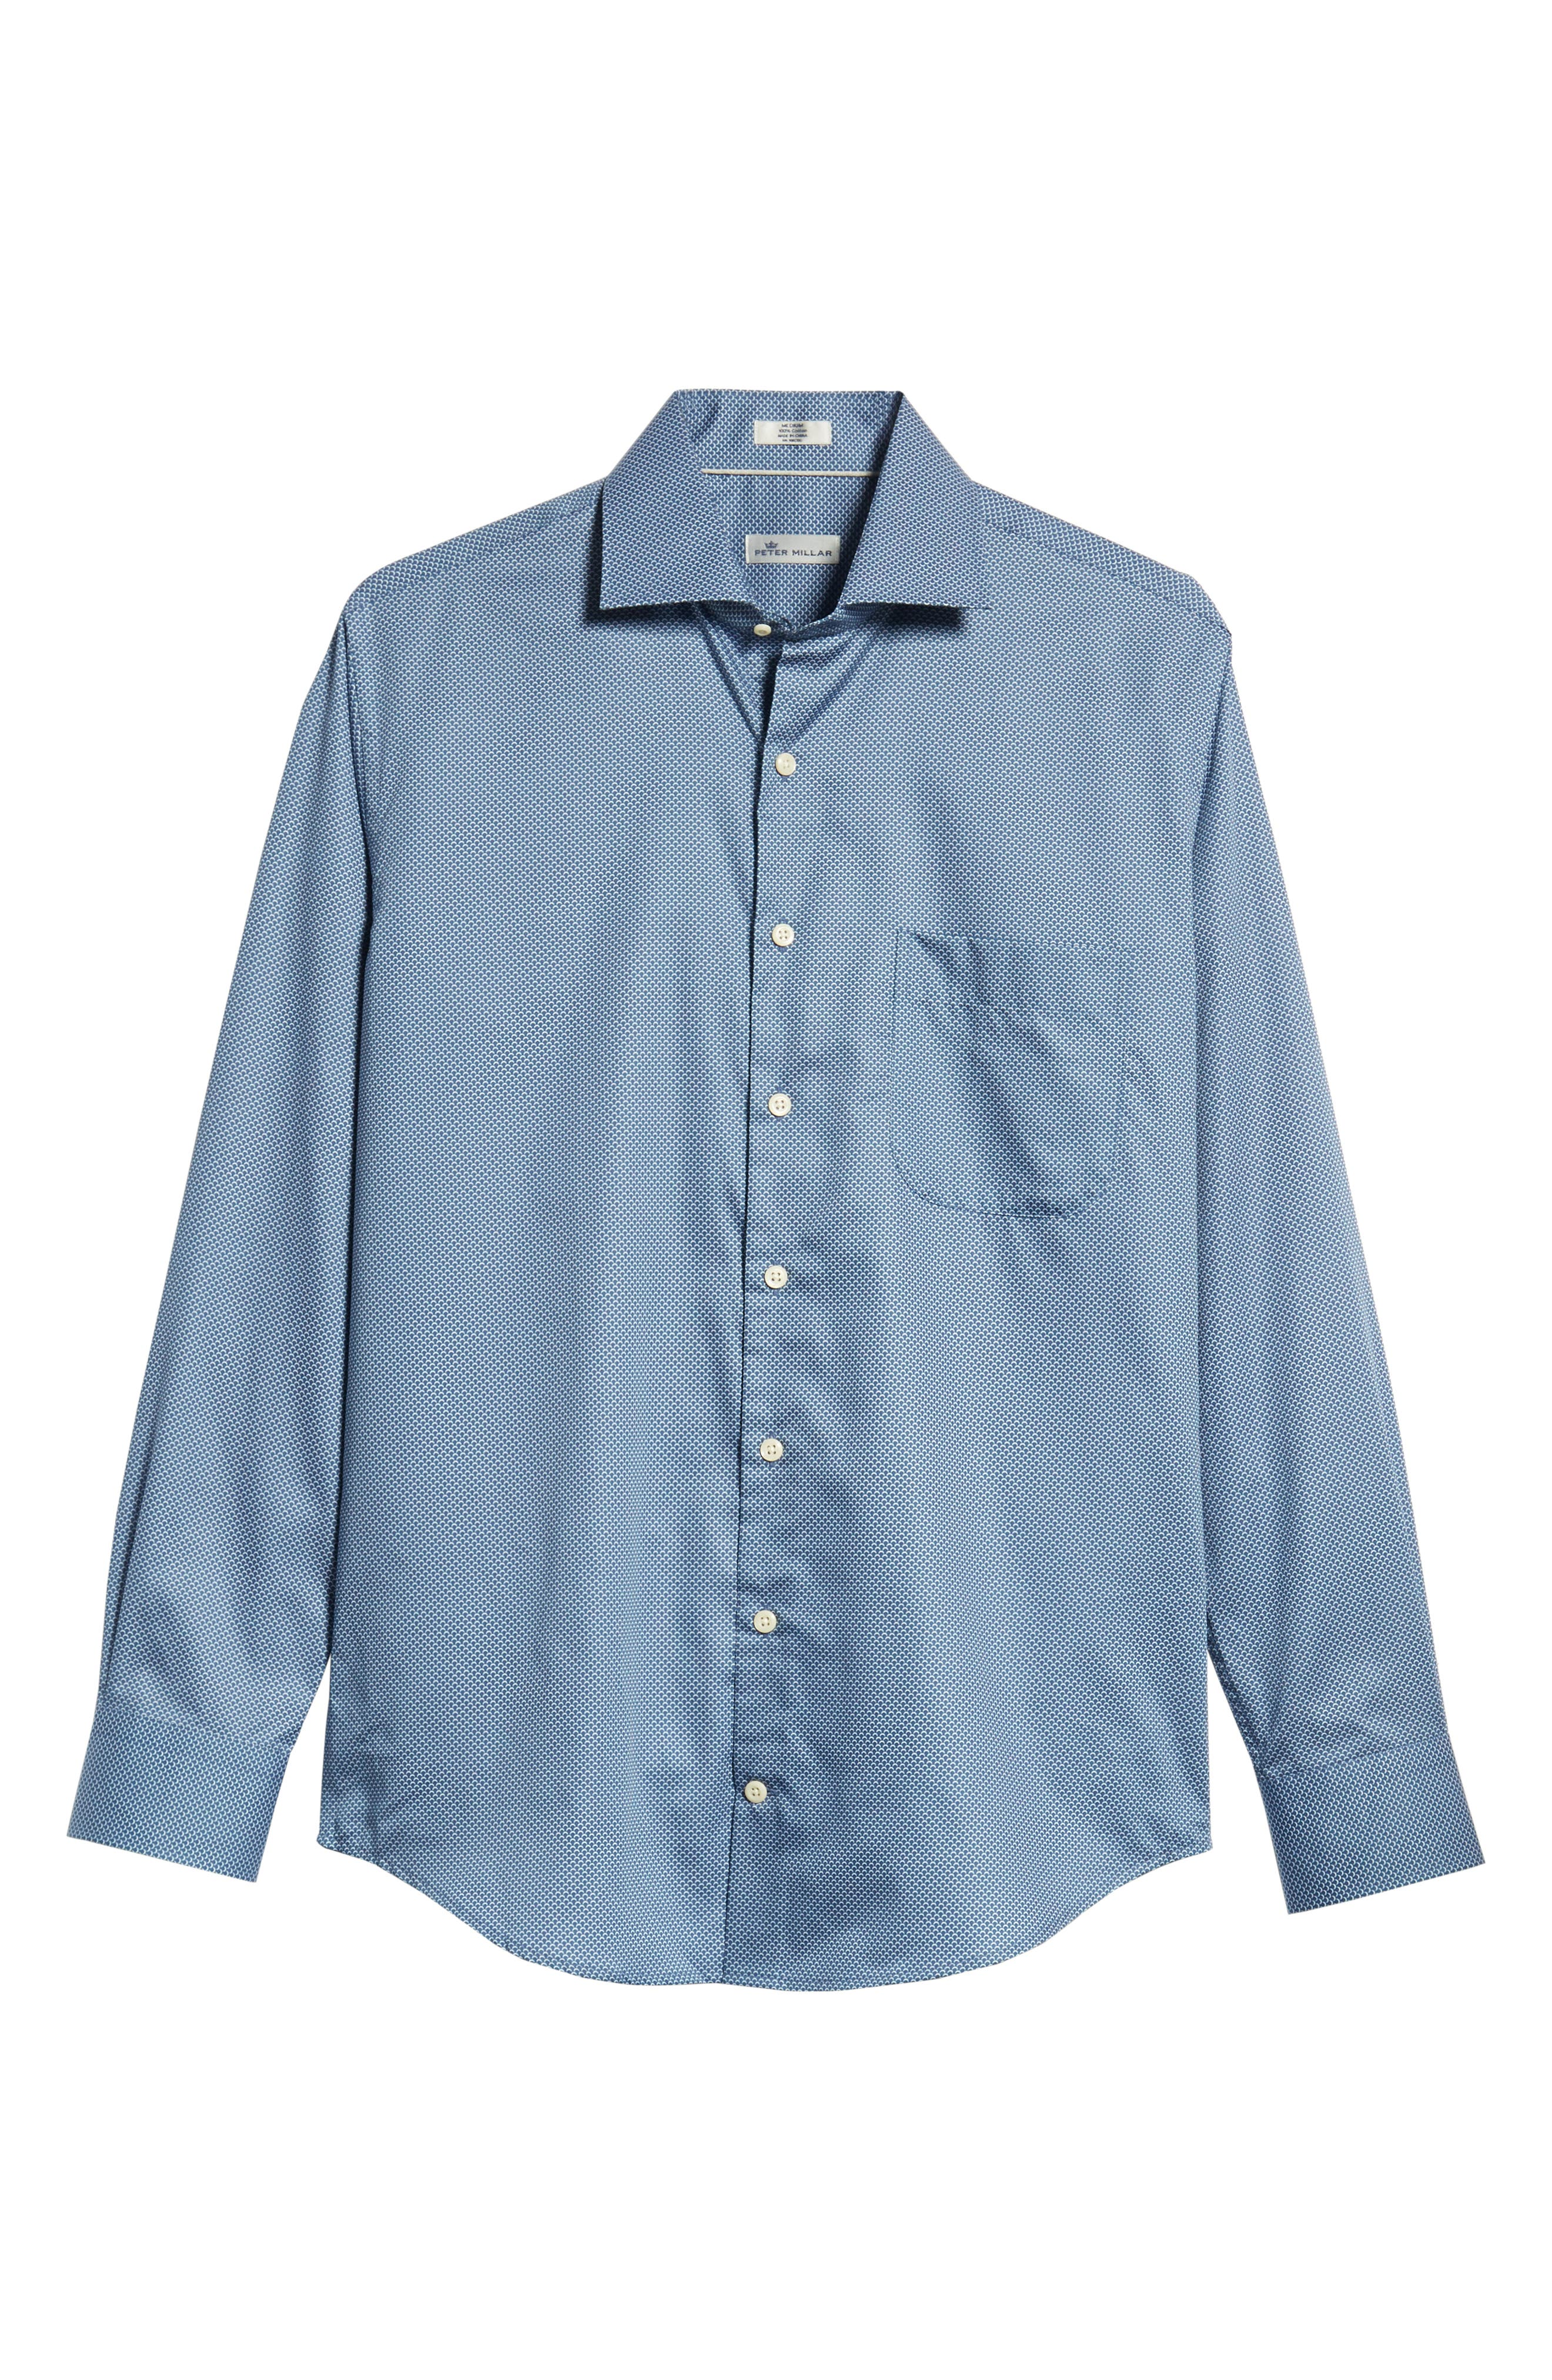 Off the Scale Sport Shirt,                             Alternate thumbnail 5, color,                             YANKEE BLUE